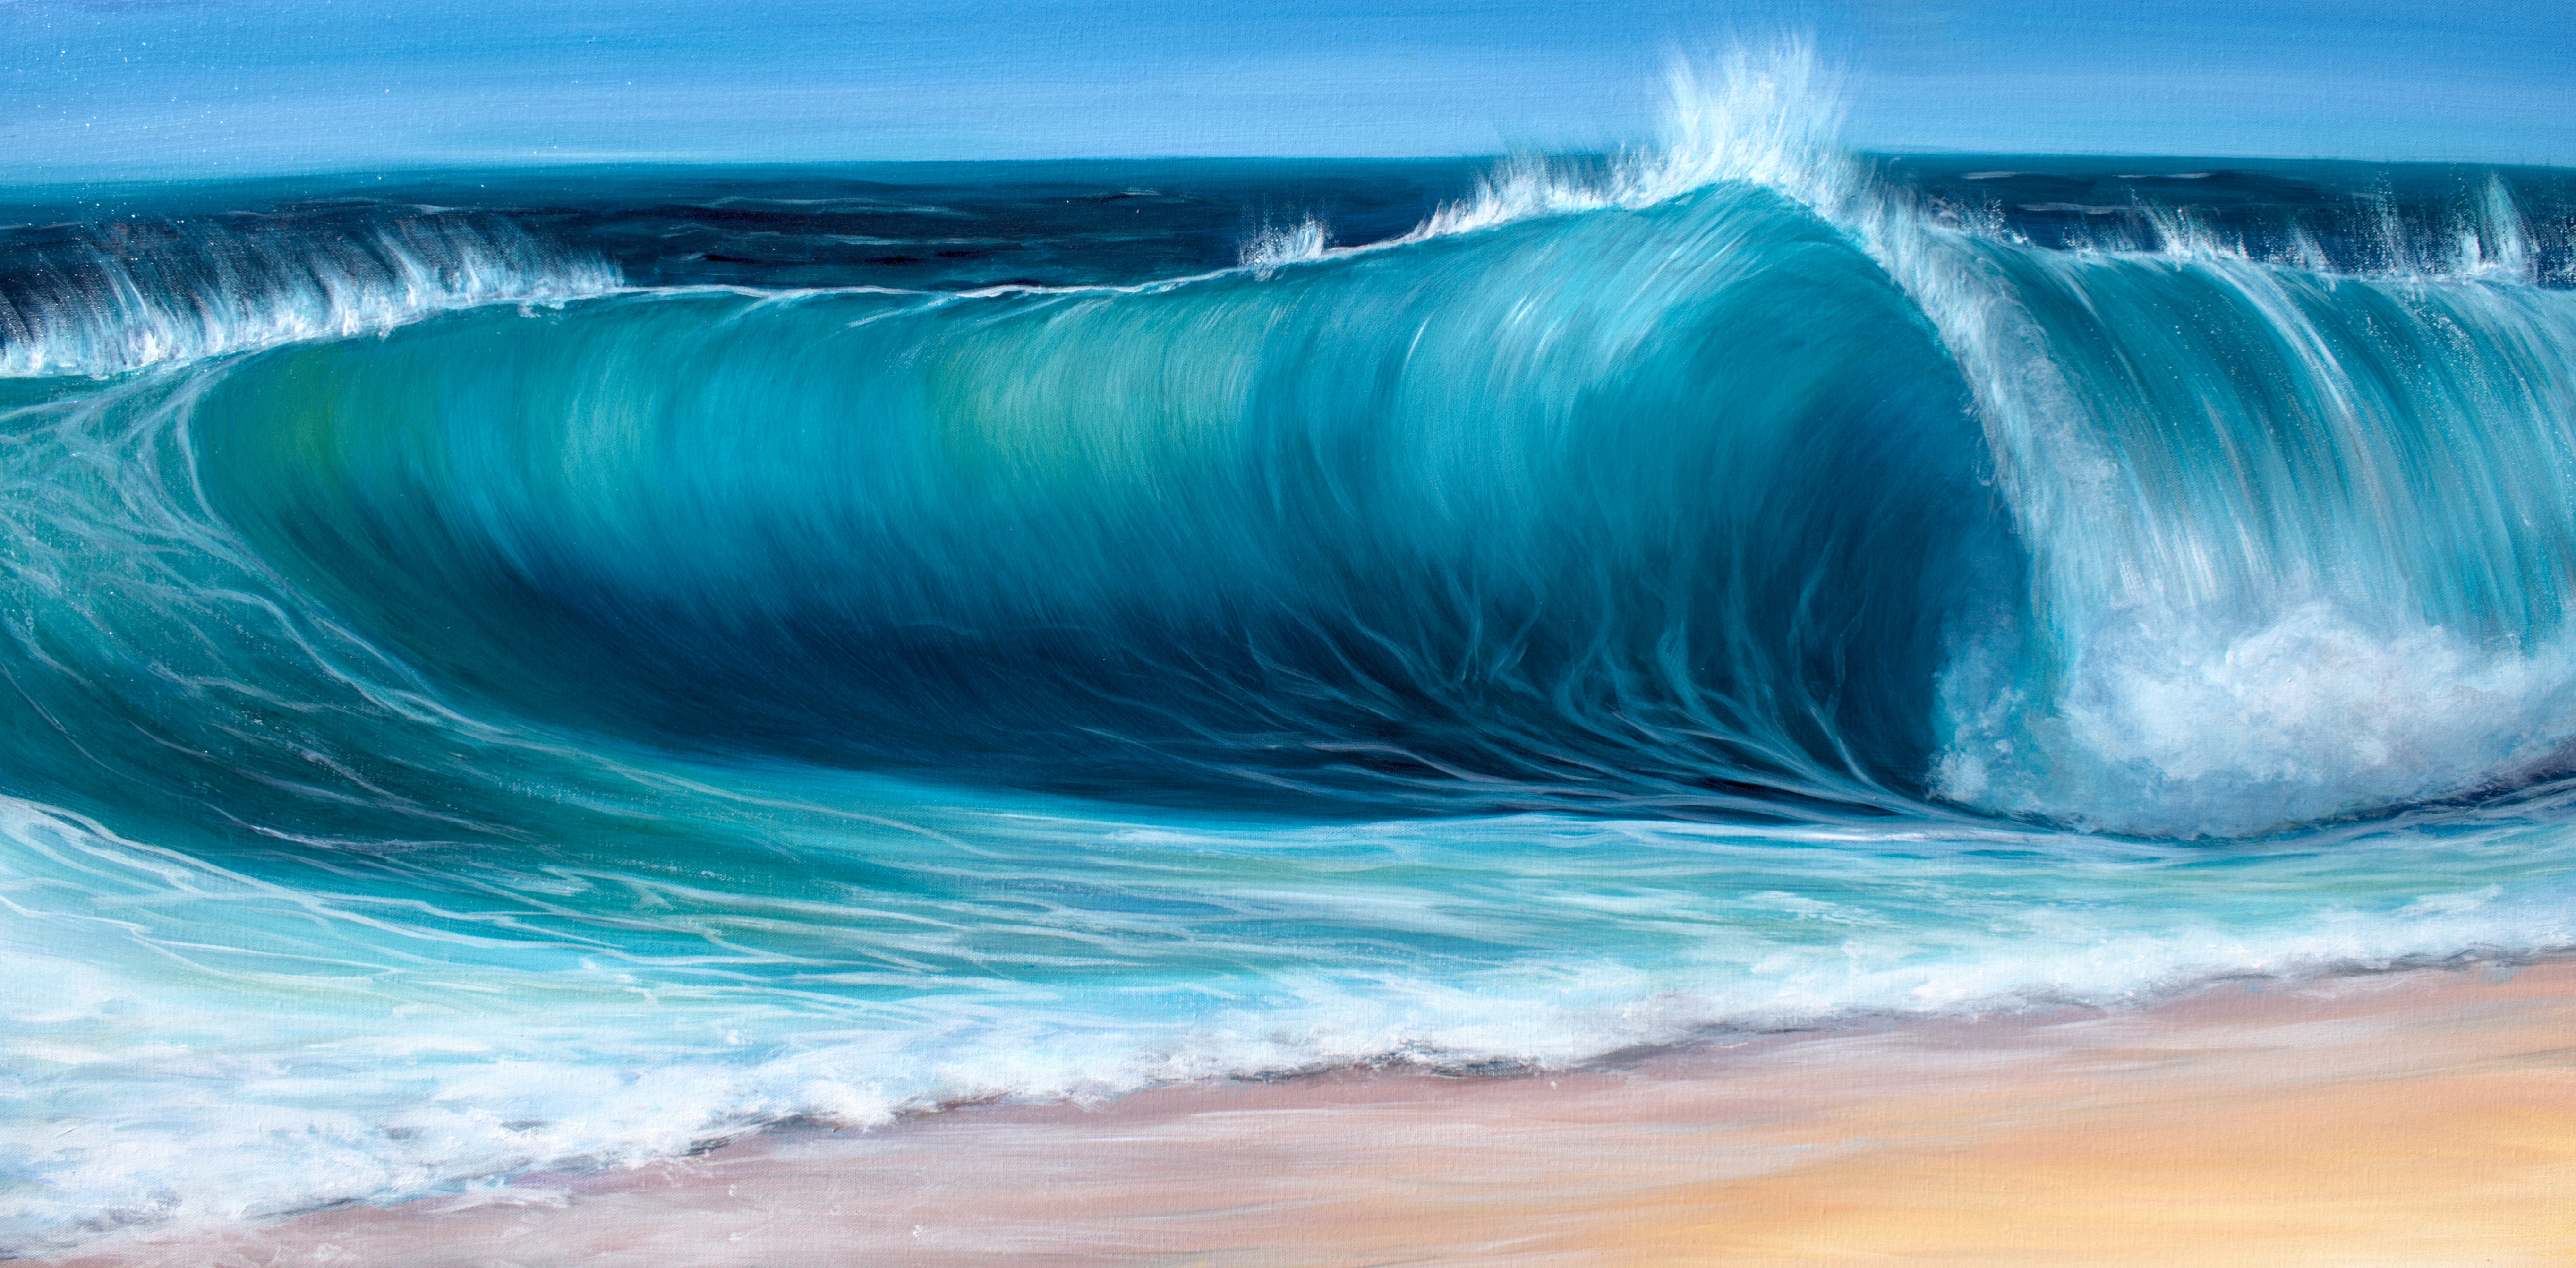 Ocean Beach Wave II fine art giclee print available in 3 sizes